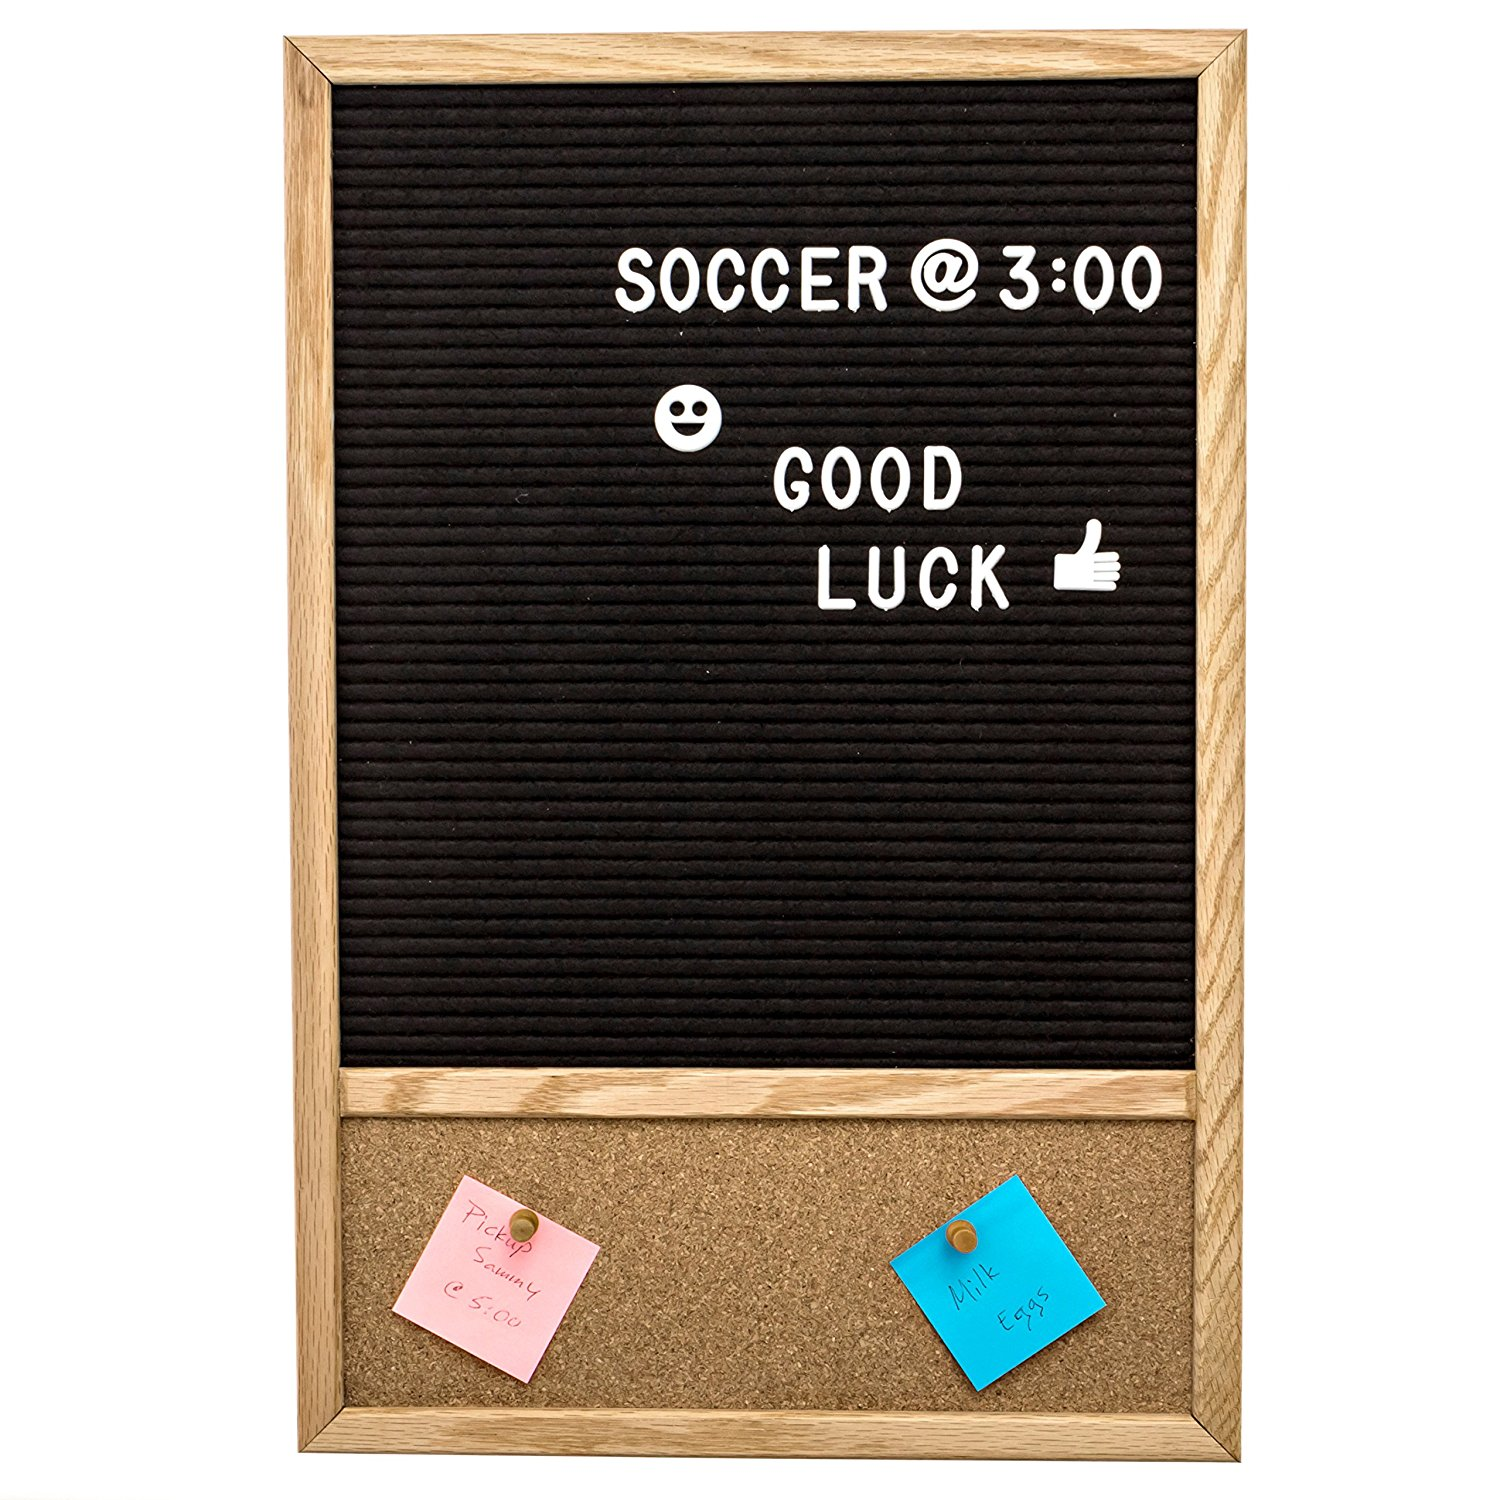 Changeable Felt Letter Board with Attached Cork Board, with 300 Plastic Letters, Numbers & Symbols, Includes Letter Bag, Felt Board 11x12 Inches, Cork Board 3.5x11 Inches